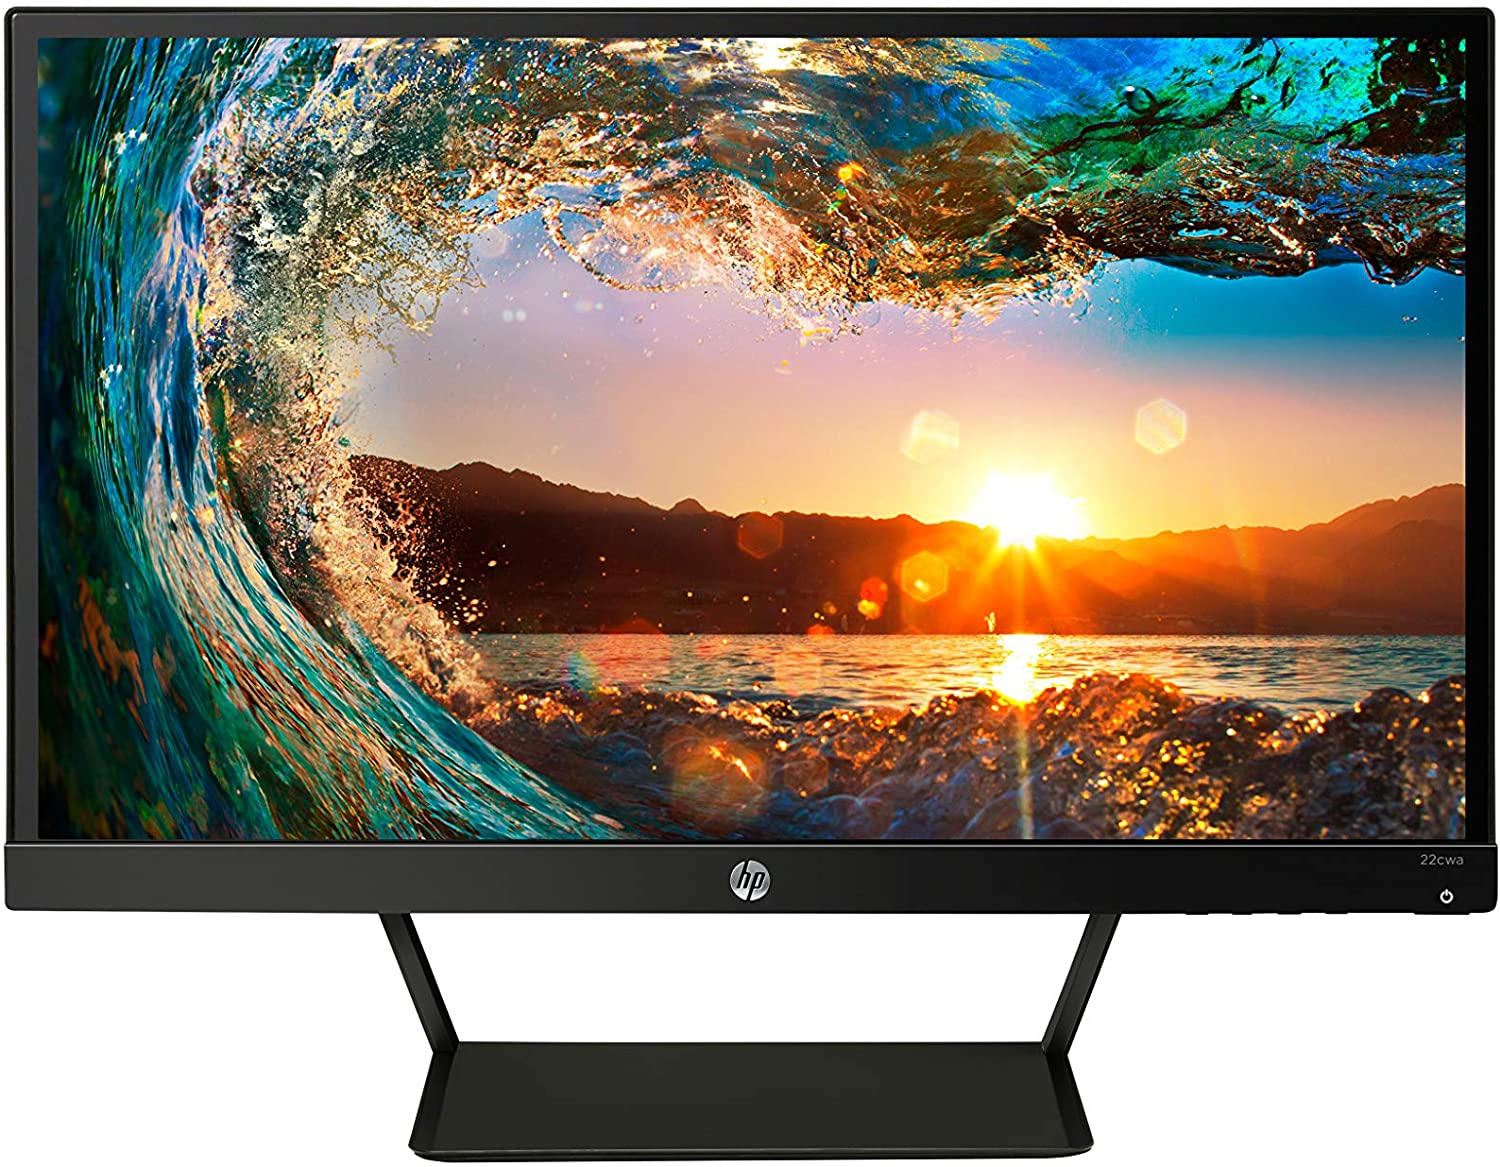 Amazon Com Hp Pavilion 22cwa 21 5 Inch Full Hd 1080p Ips Led Monitor Tilt Vga And Hdmi T4q59aa Black Computers Accessories